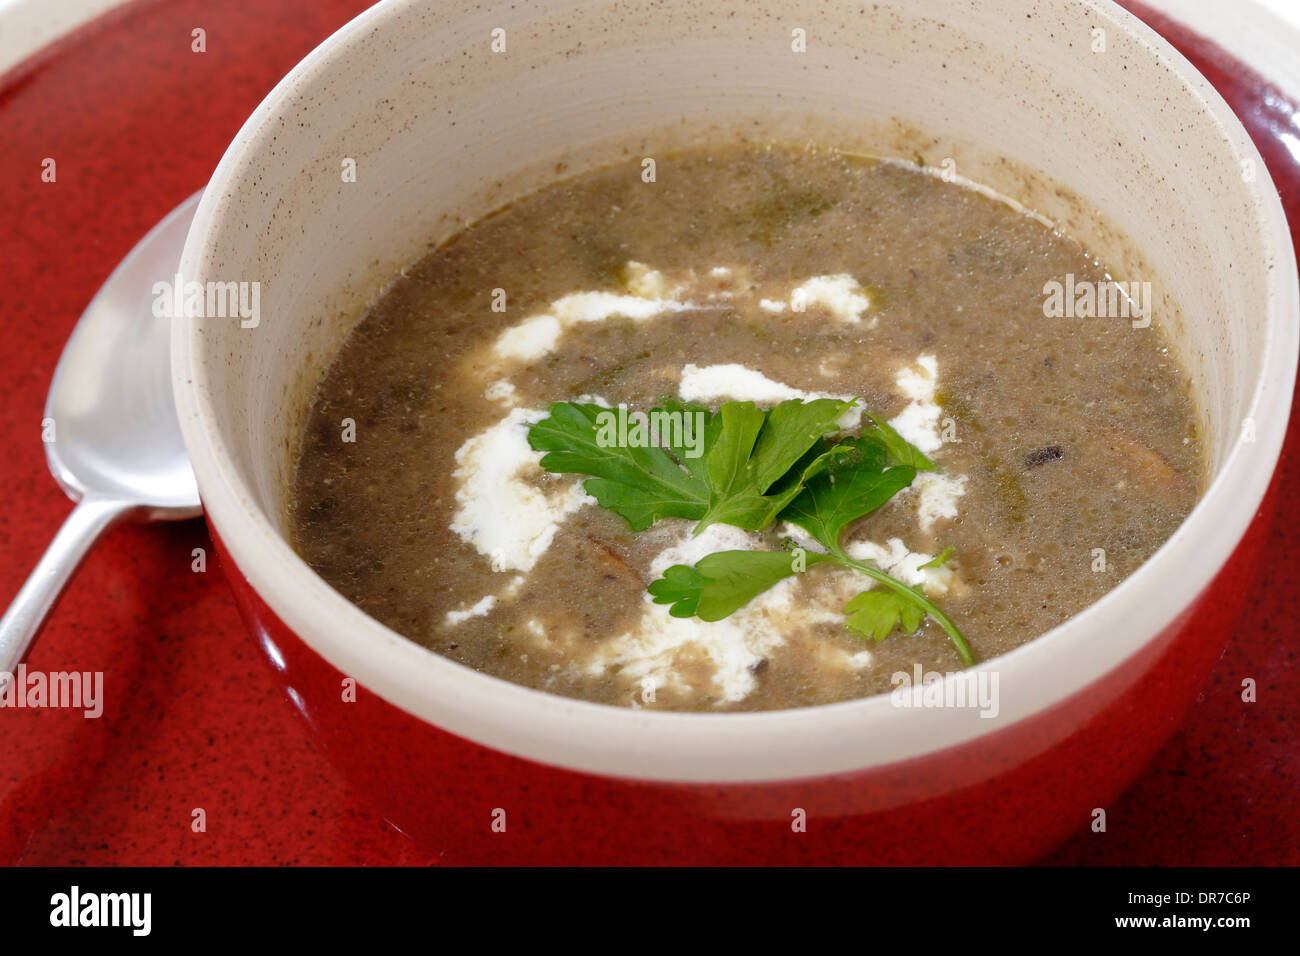 Homemade Cream Of Mushroom Soup In A Bow Garnished With Parsley